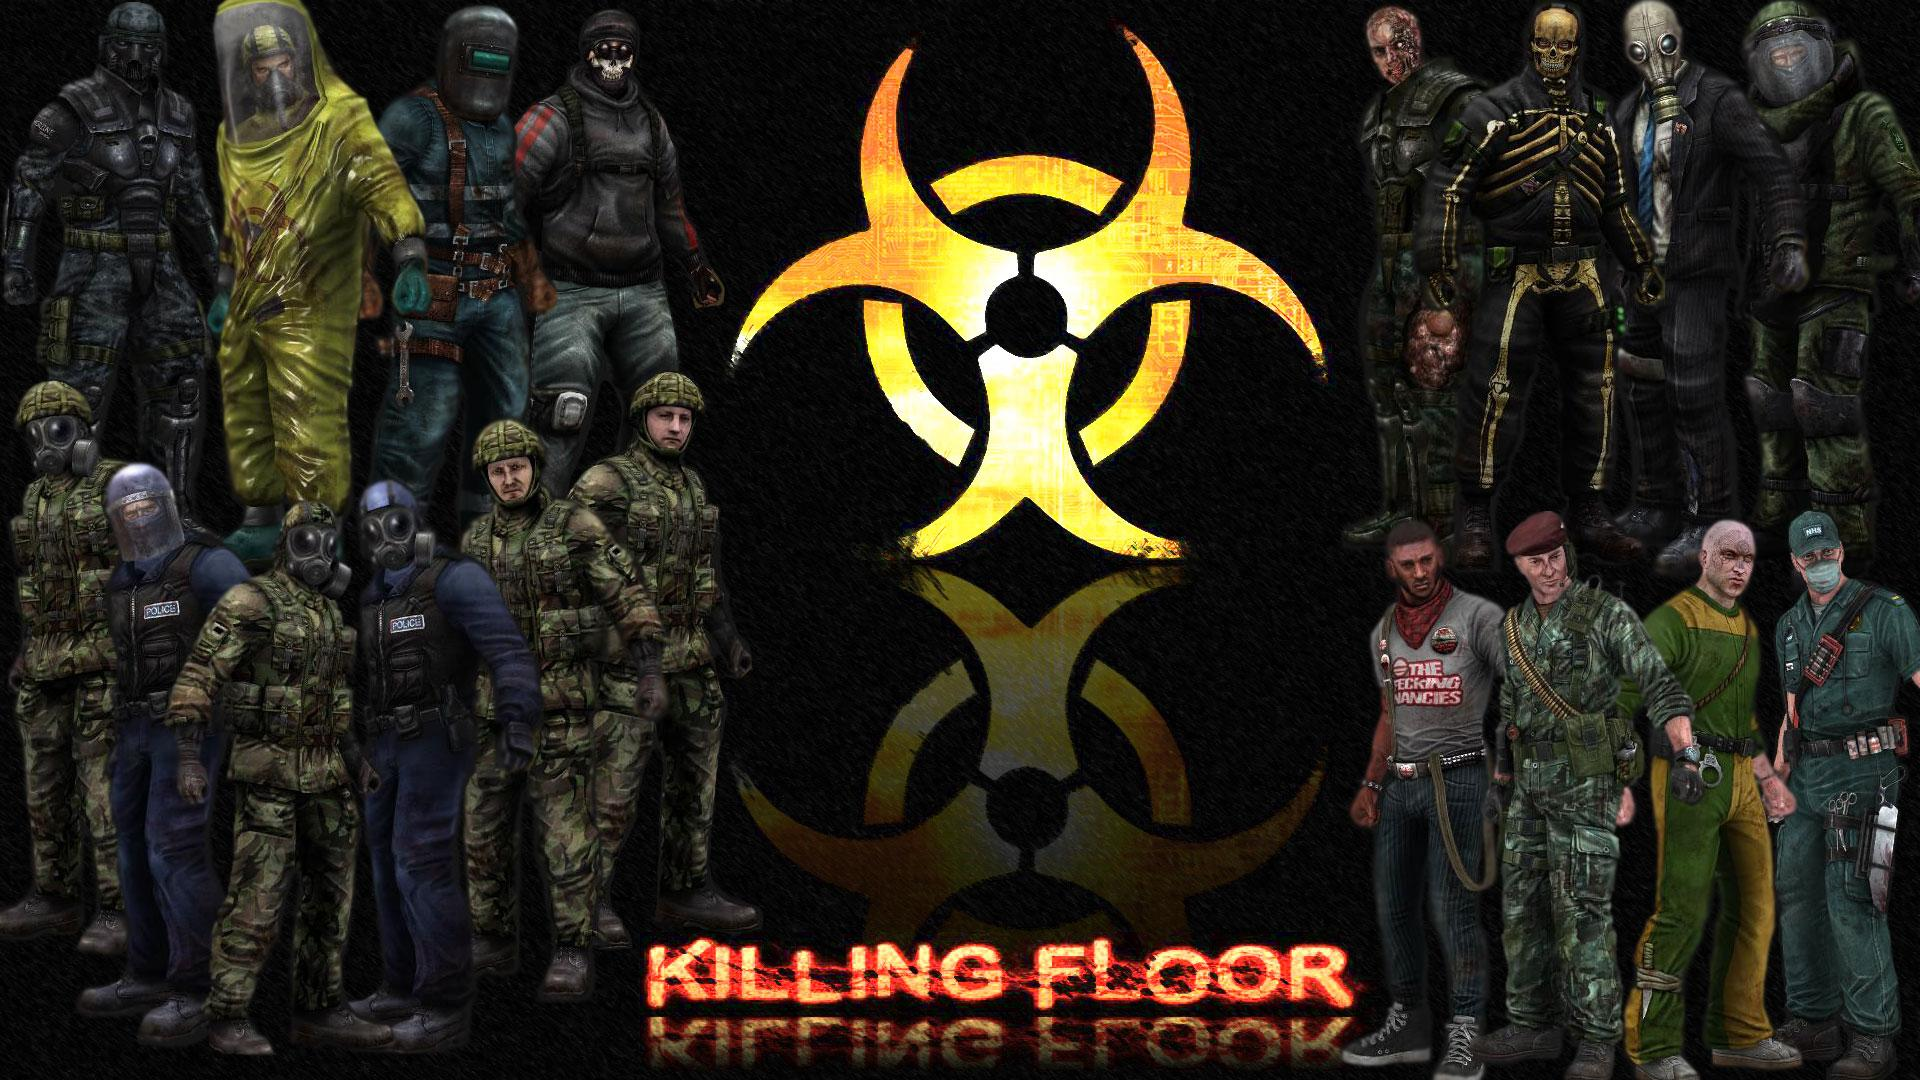 Killing Floor Wallpaper By Adrian3928 On DeviantArt